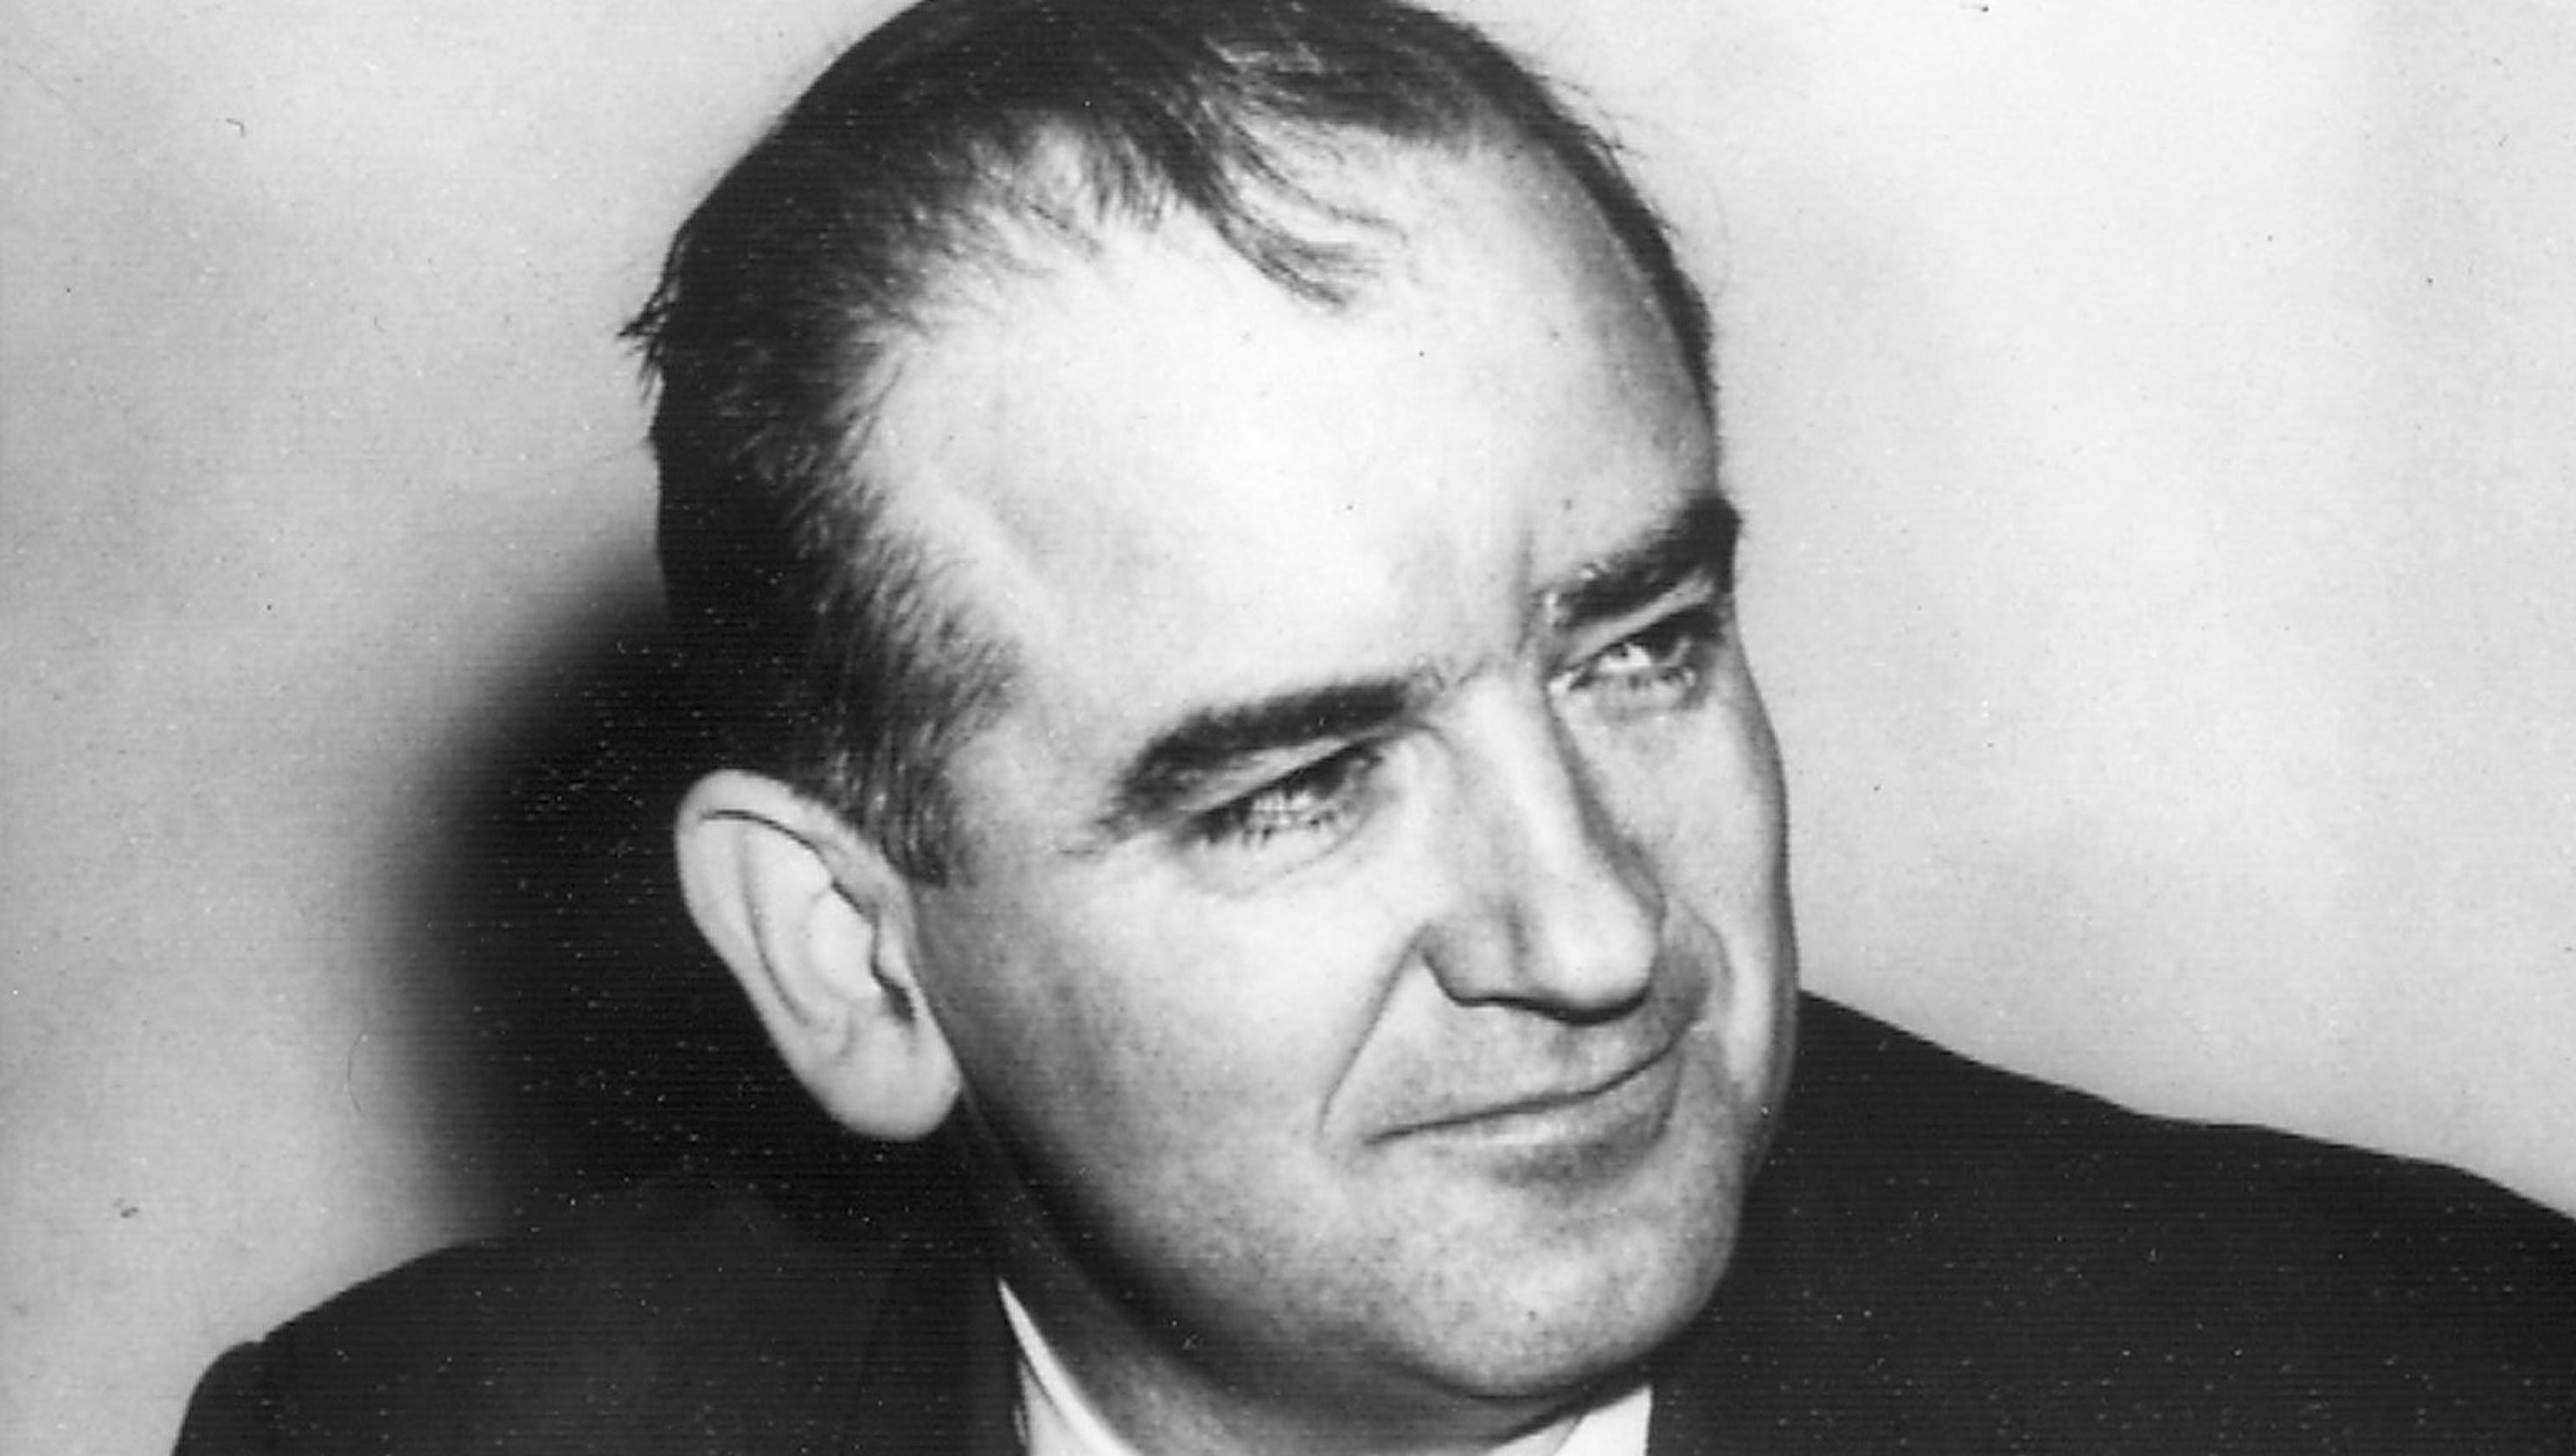 an introduction to the life of joseph r mccarthy The us senate votes 65 to 22 to condemn senator joseph r mccarthy for conduct unbecoming of a senator the condemnation, which was equivalent to a censure,.